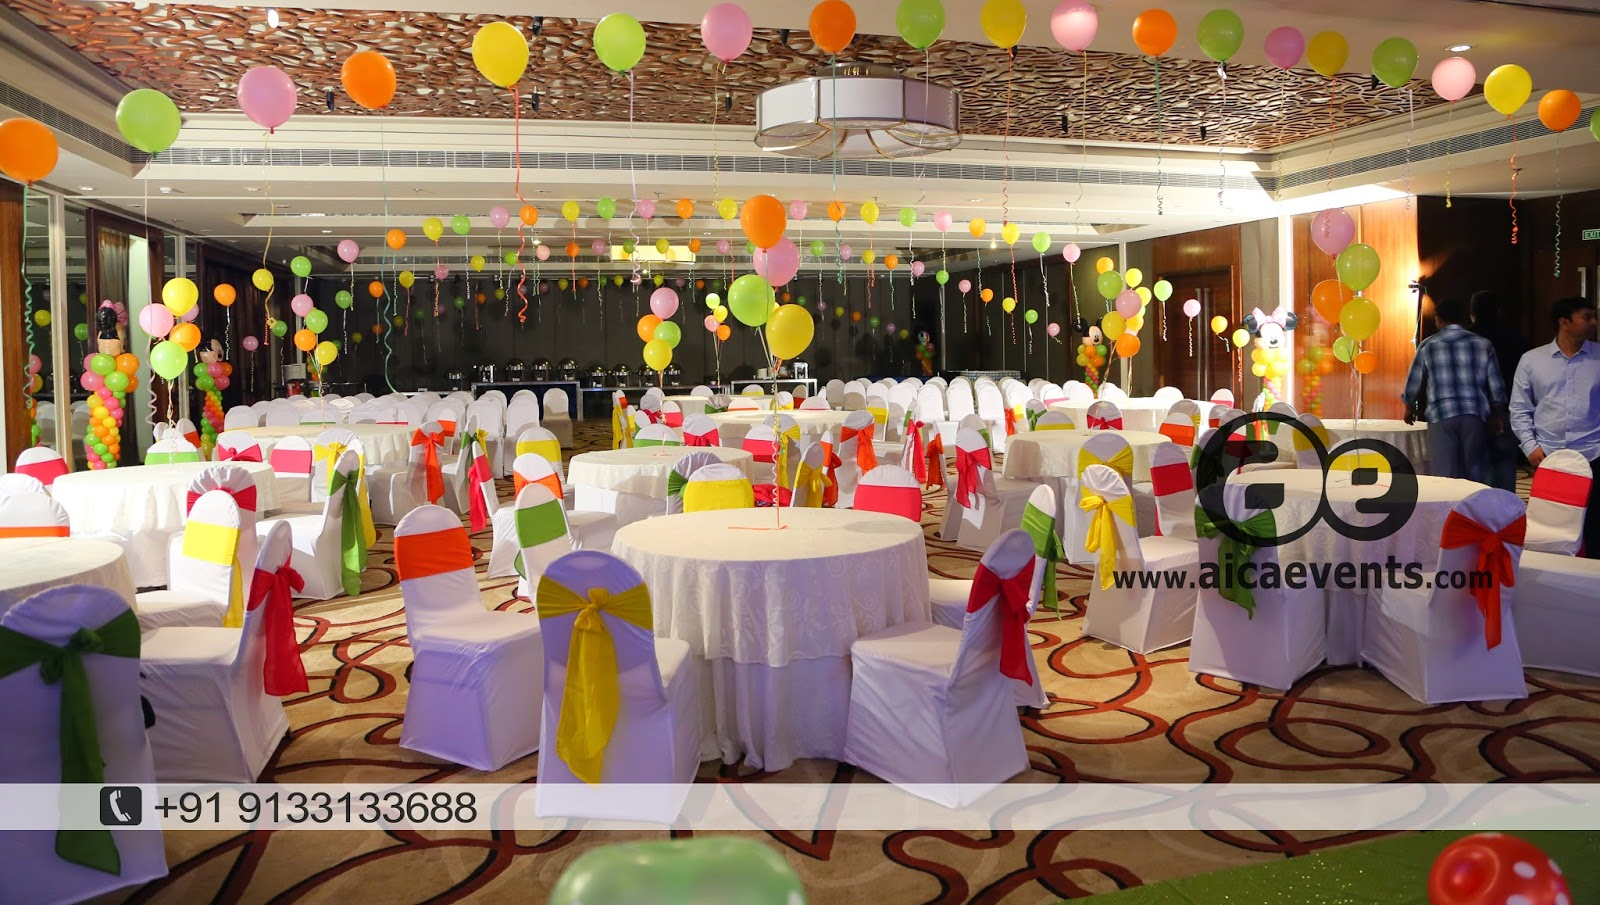 aicaevents Balloon wall Stage Backdrop decoration